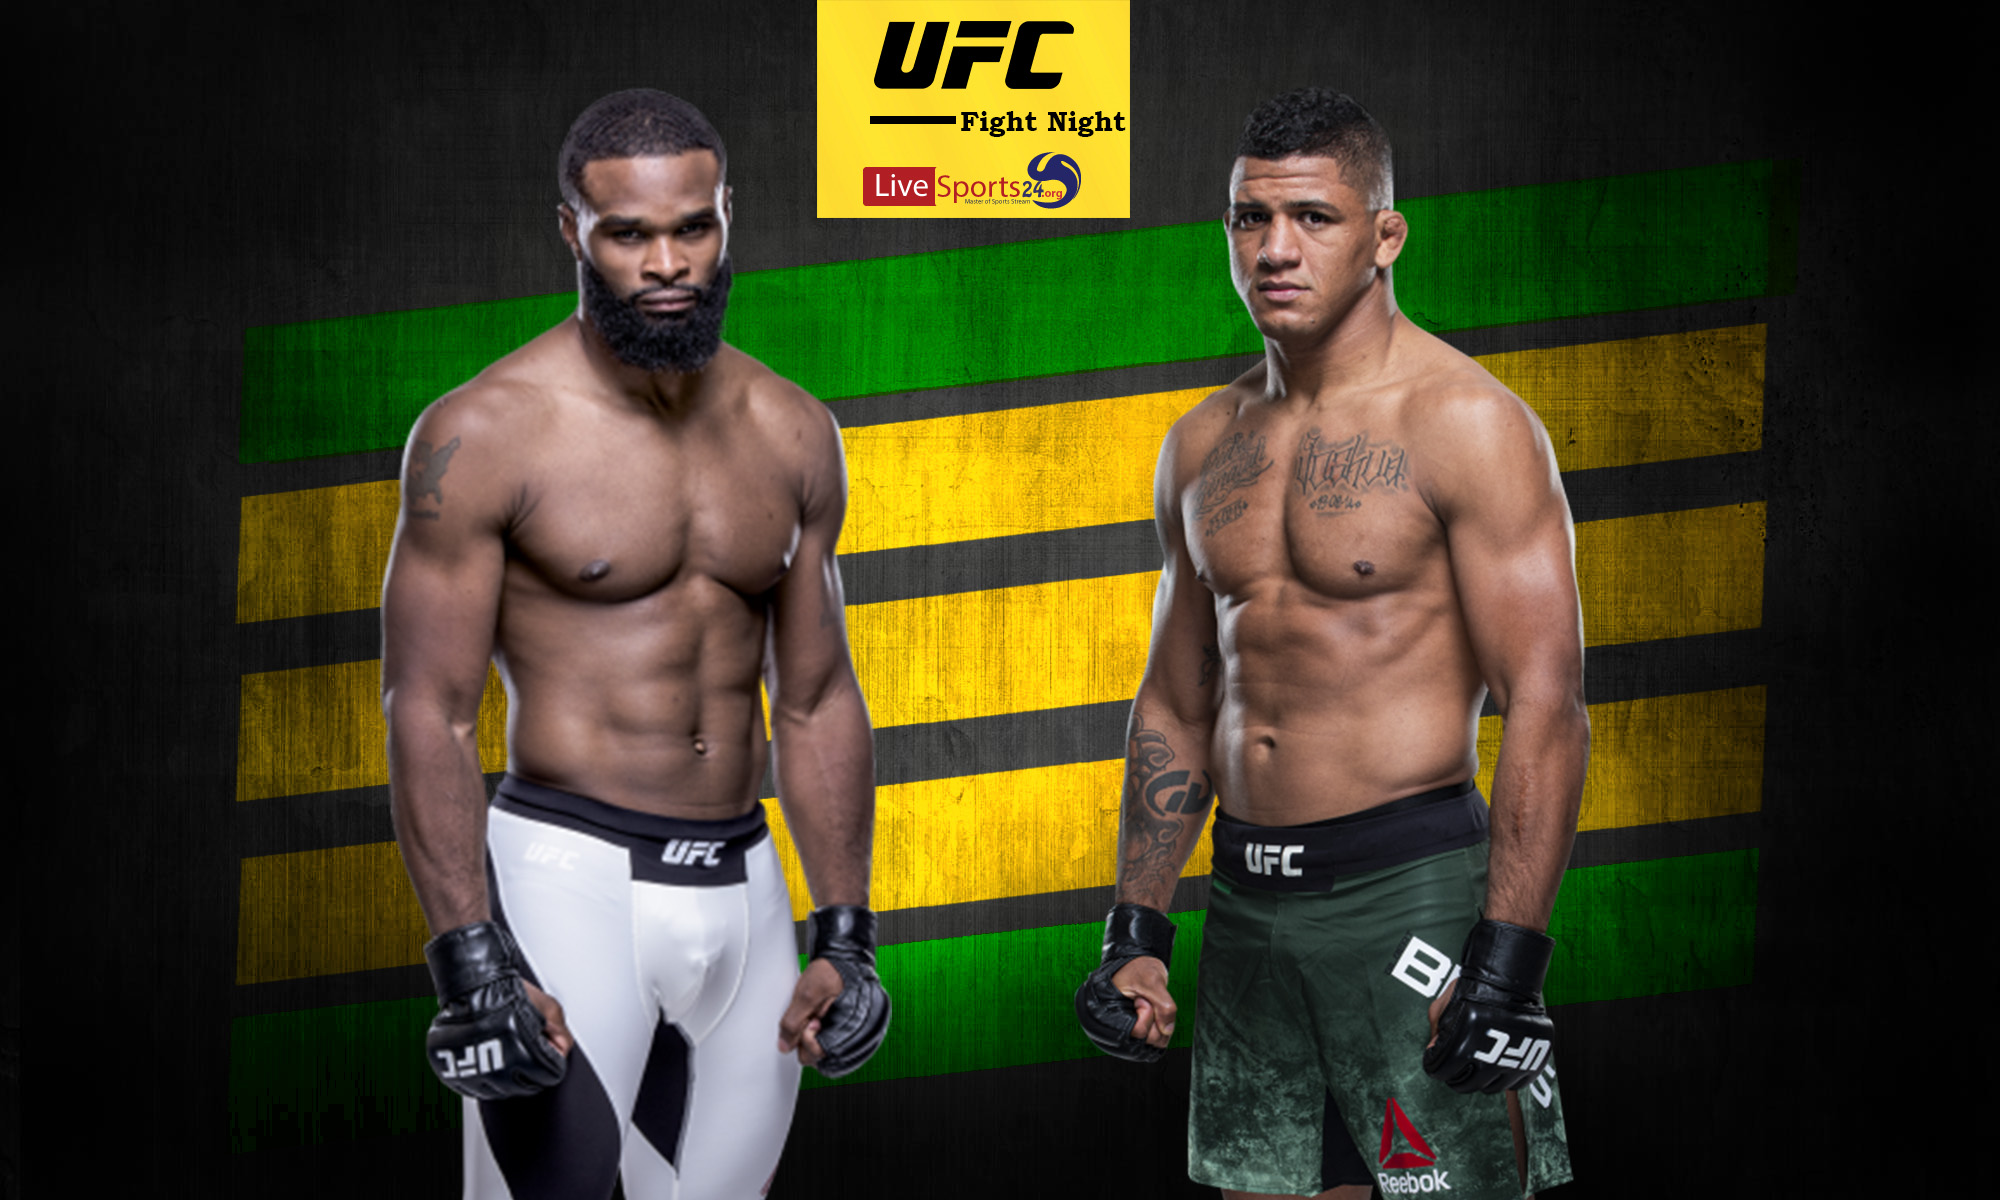 How to Watch UFC Fight Night 176 Live in More Affordable Way